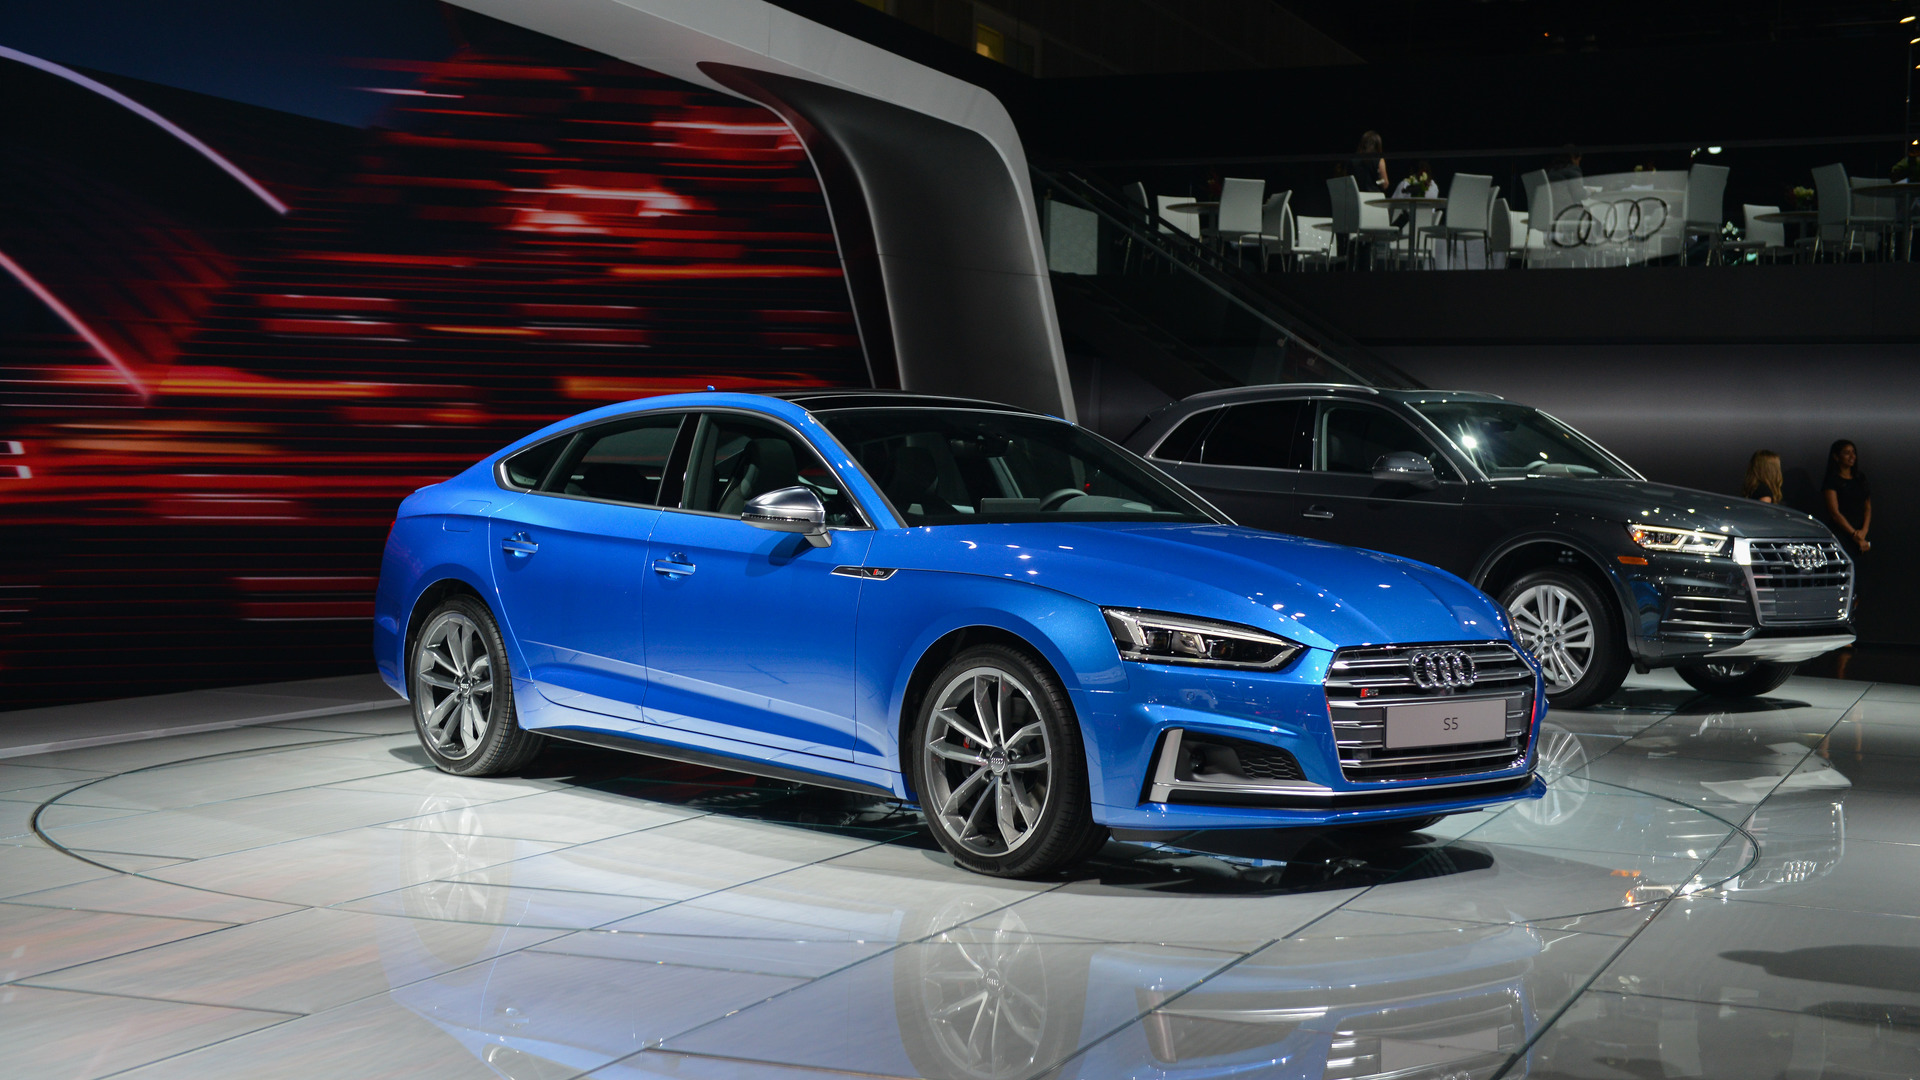 audi s5 2017 audi s5 release date pictures and specs 2018 audi s4 and s5 first drive review s. Black Bedroom Furniture Sets. Home Design Ideas